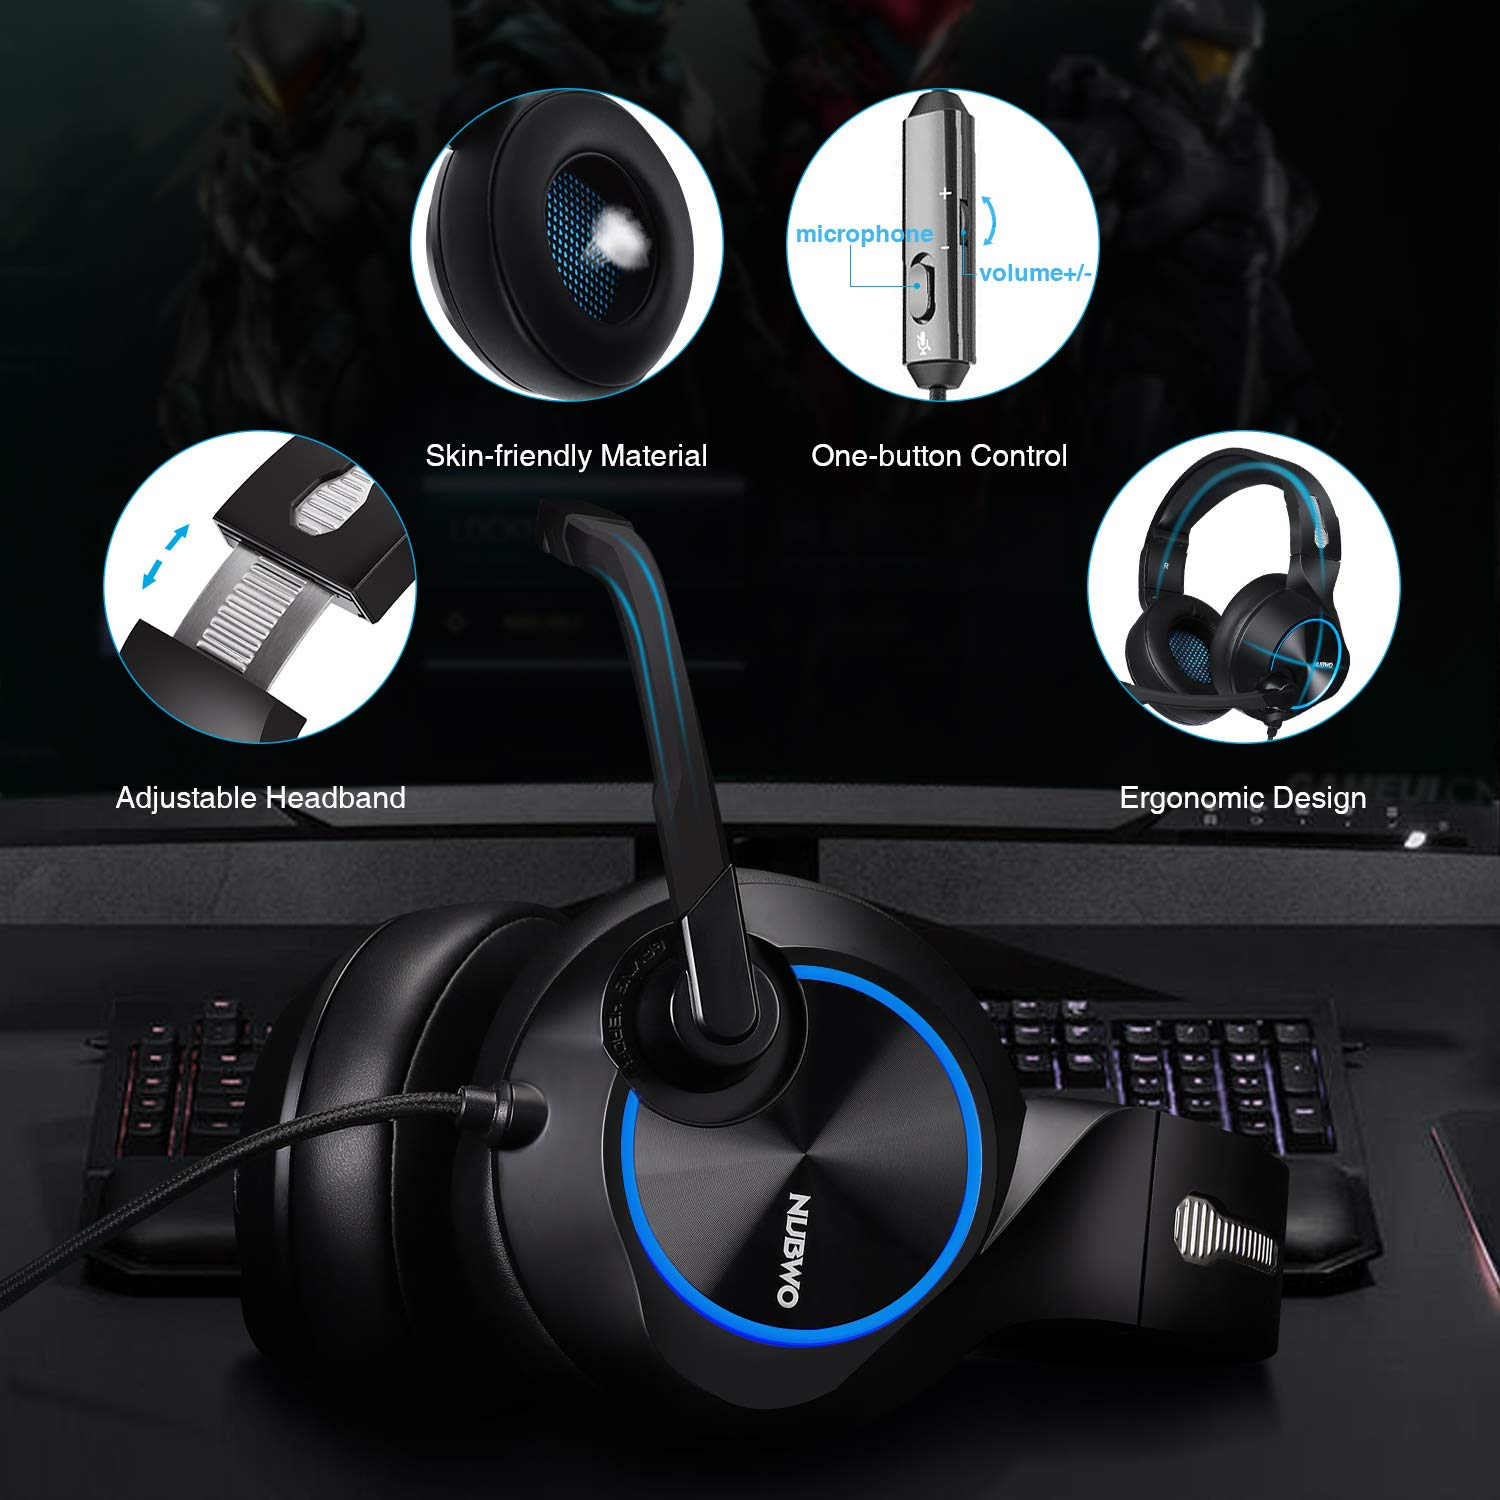 Gaming Headset for Xbox One, PS4, PC, Controller, ARKARTECH Noise Cancelling Over Ear Headphones with Mic, Bass Surround Soft Memory Earmuffs for Computer Laptop Switch Games by ARKARTECH (Image #3)